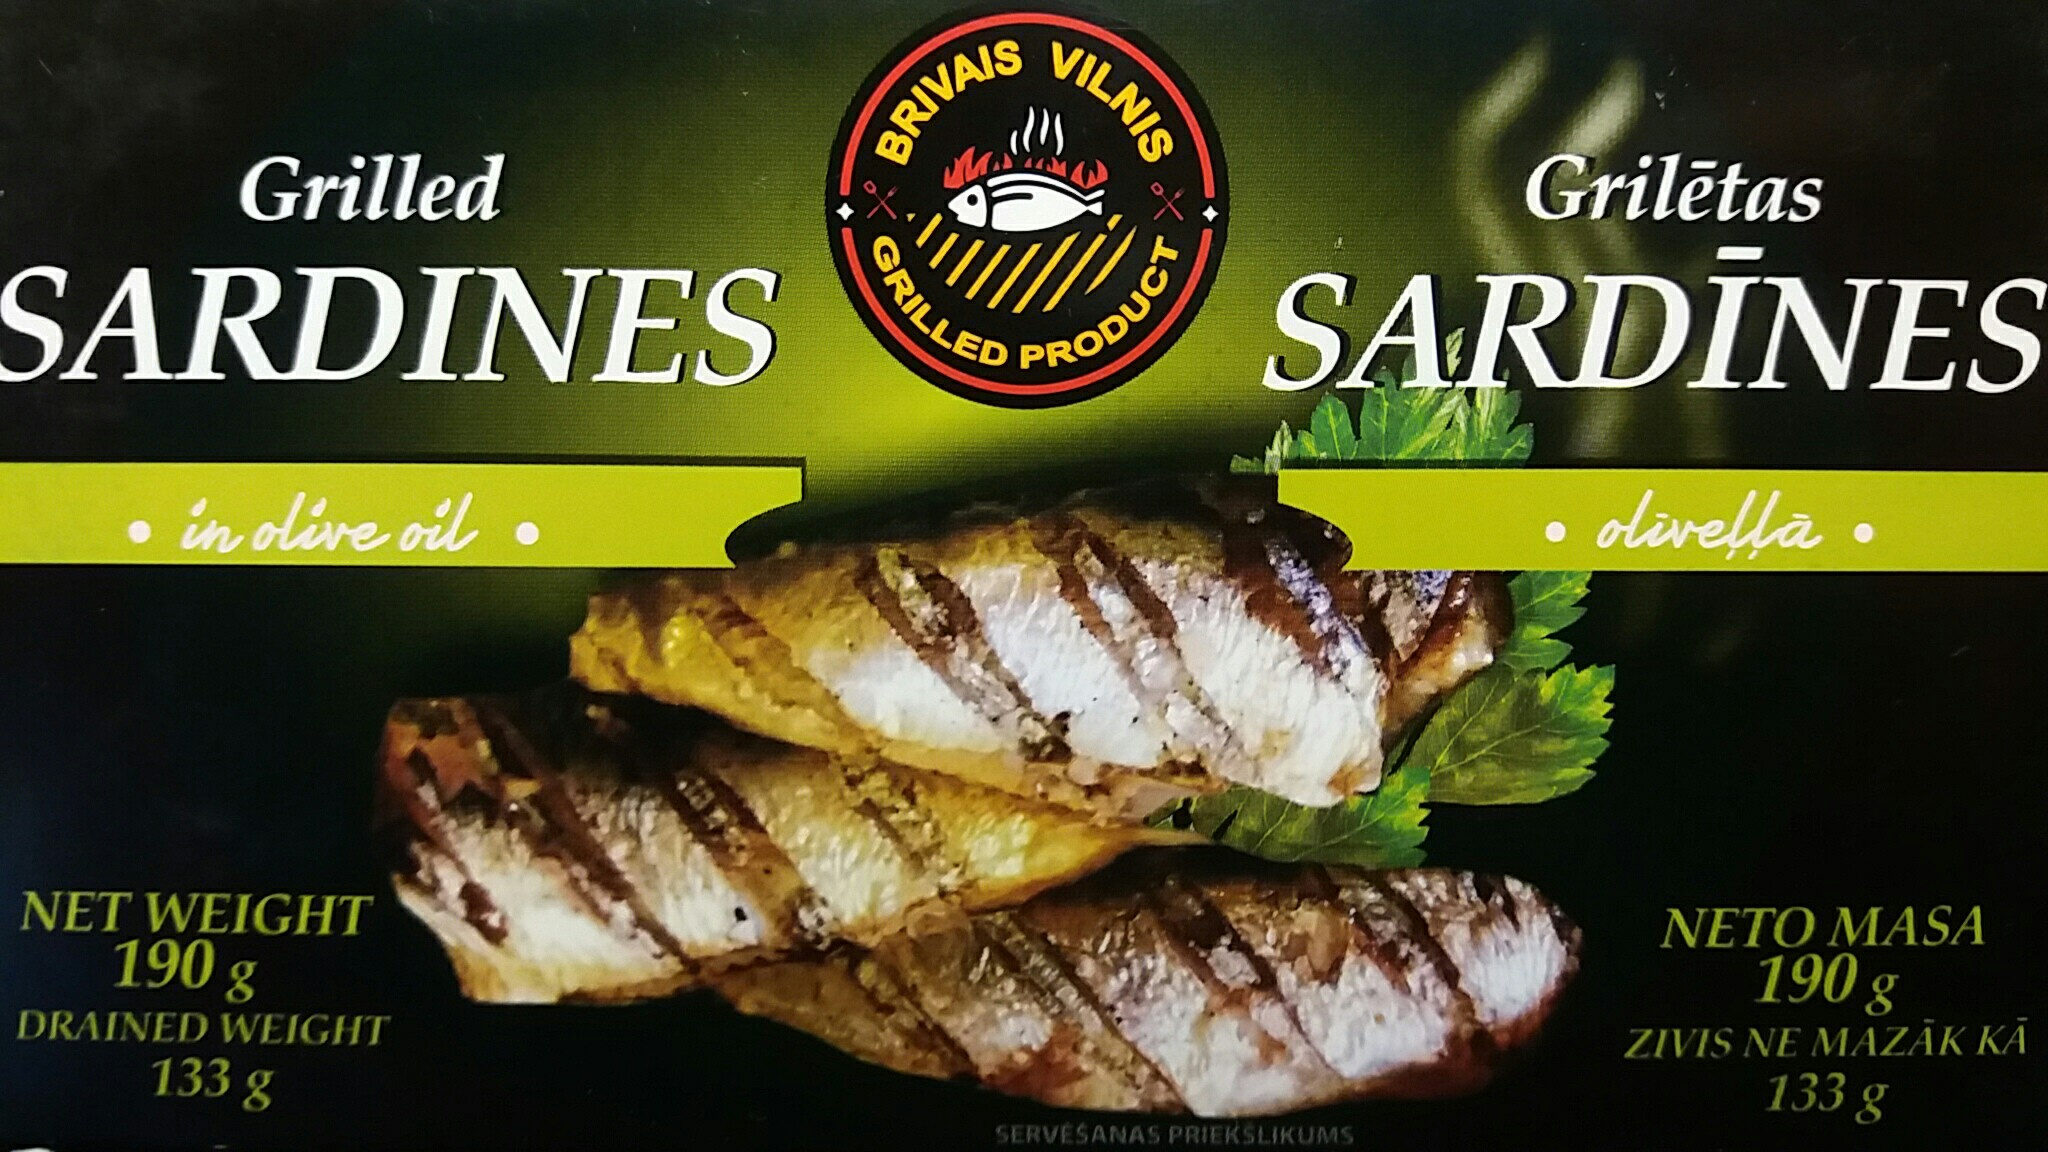 Grilled sardines in olive oil - Prodotto - en